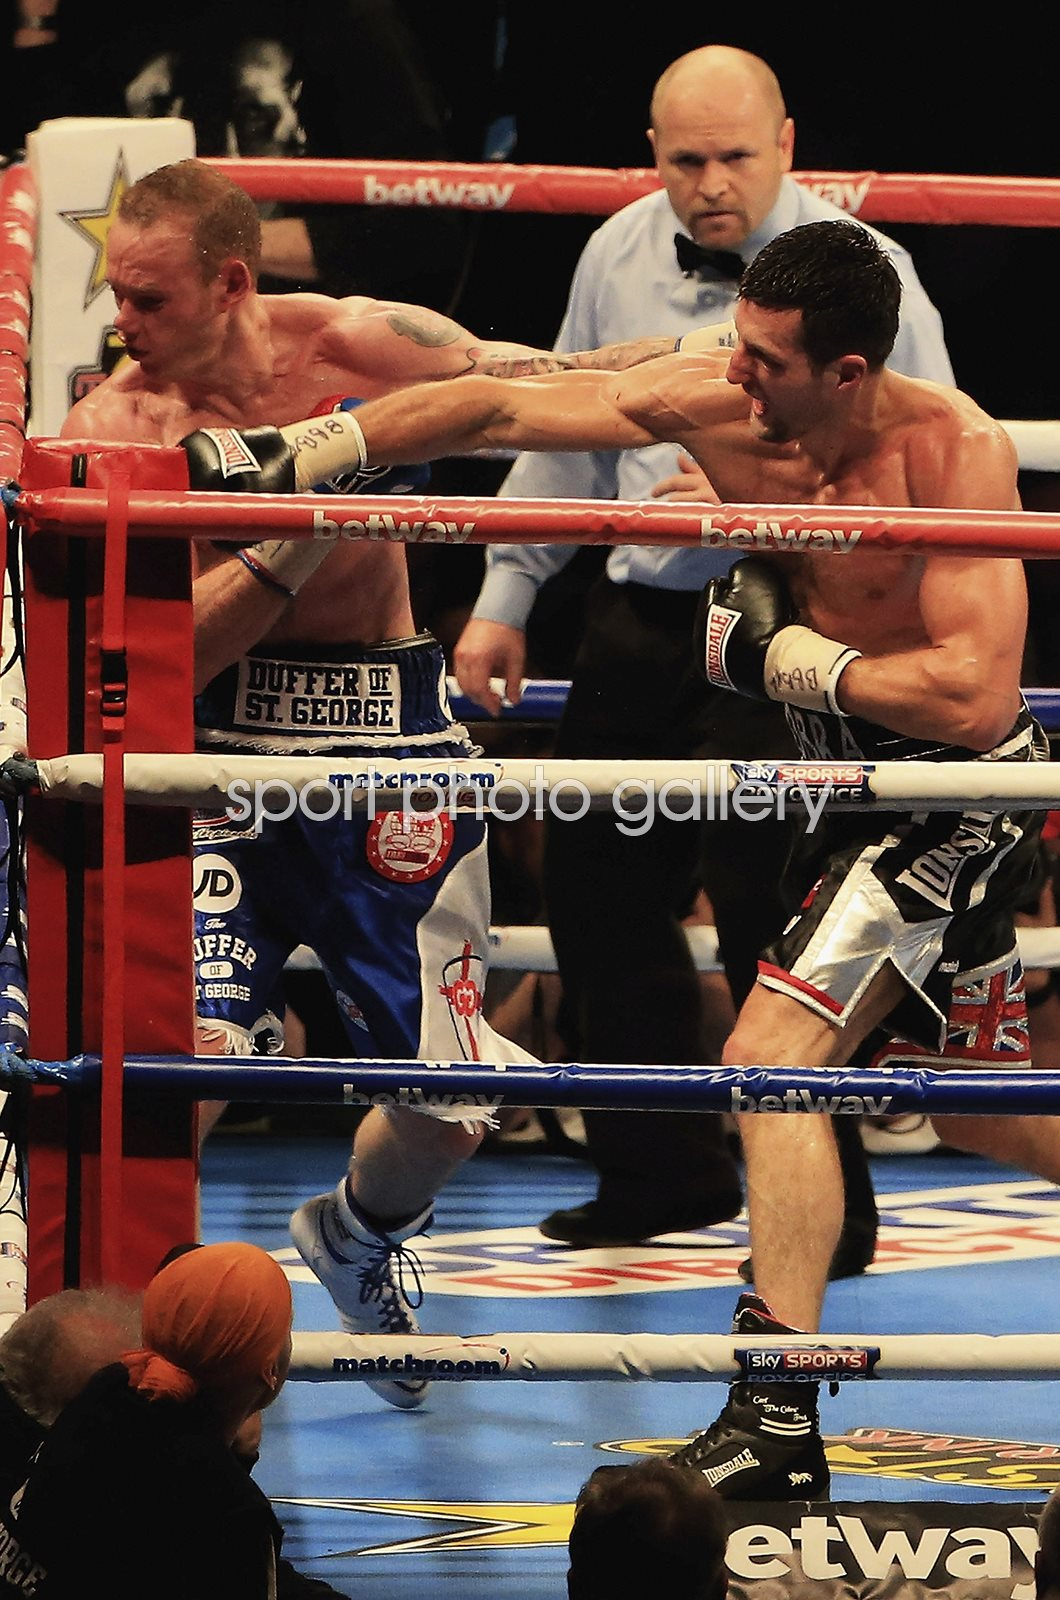 Carl Froch knocks out George Groves 2nd Fight Wembley 2014